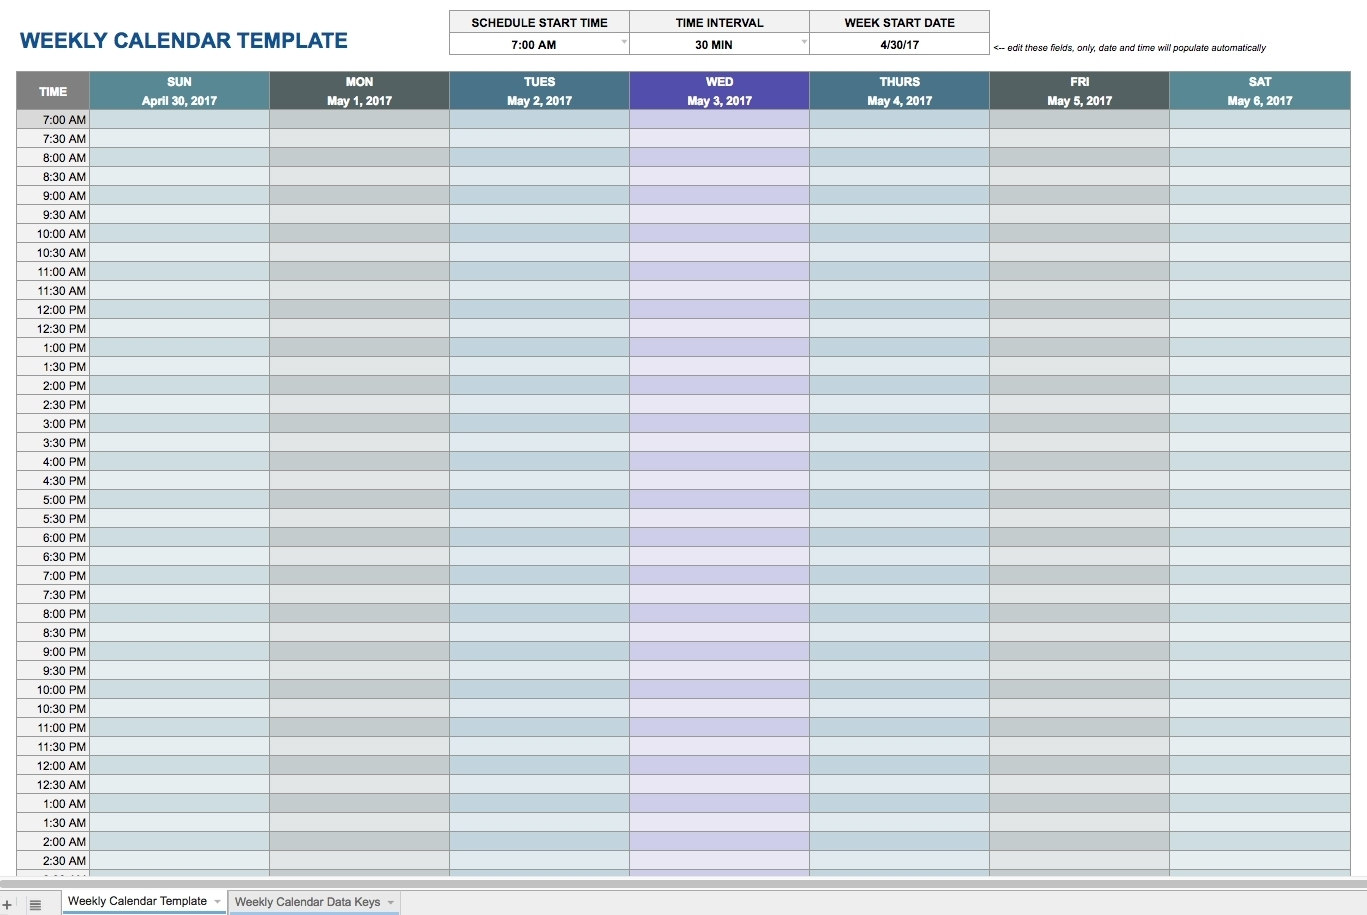 Printable Ly Appointment Calendar Schedule Template Time Slot Hourly in Calendar With Time Slots In Word Or Excel